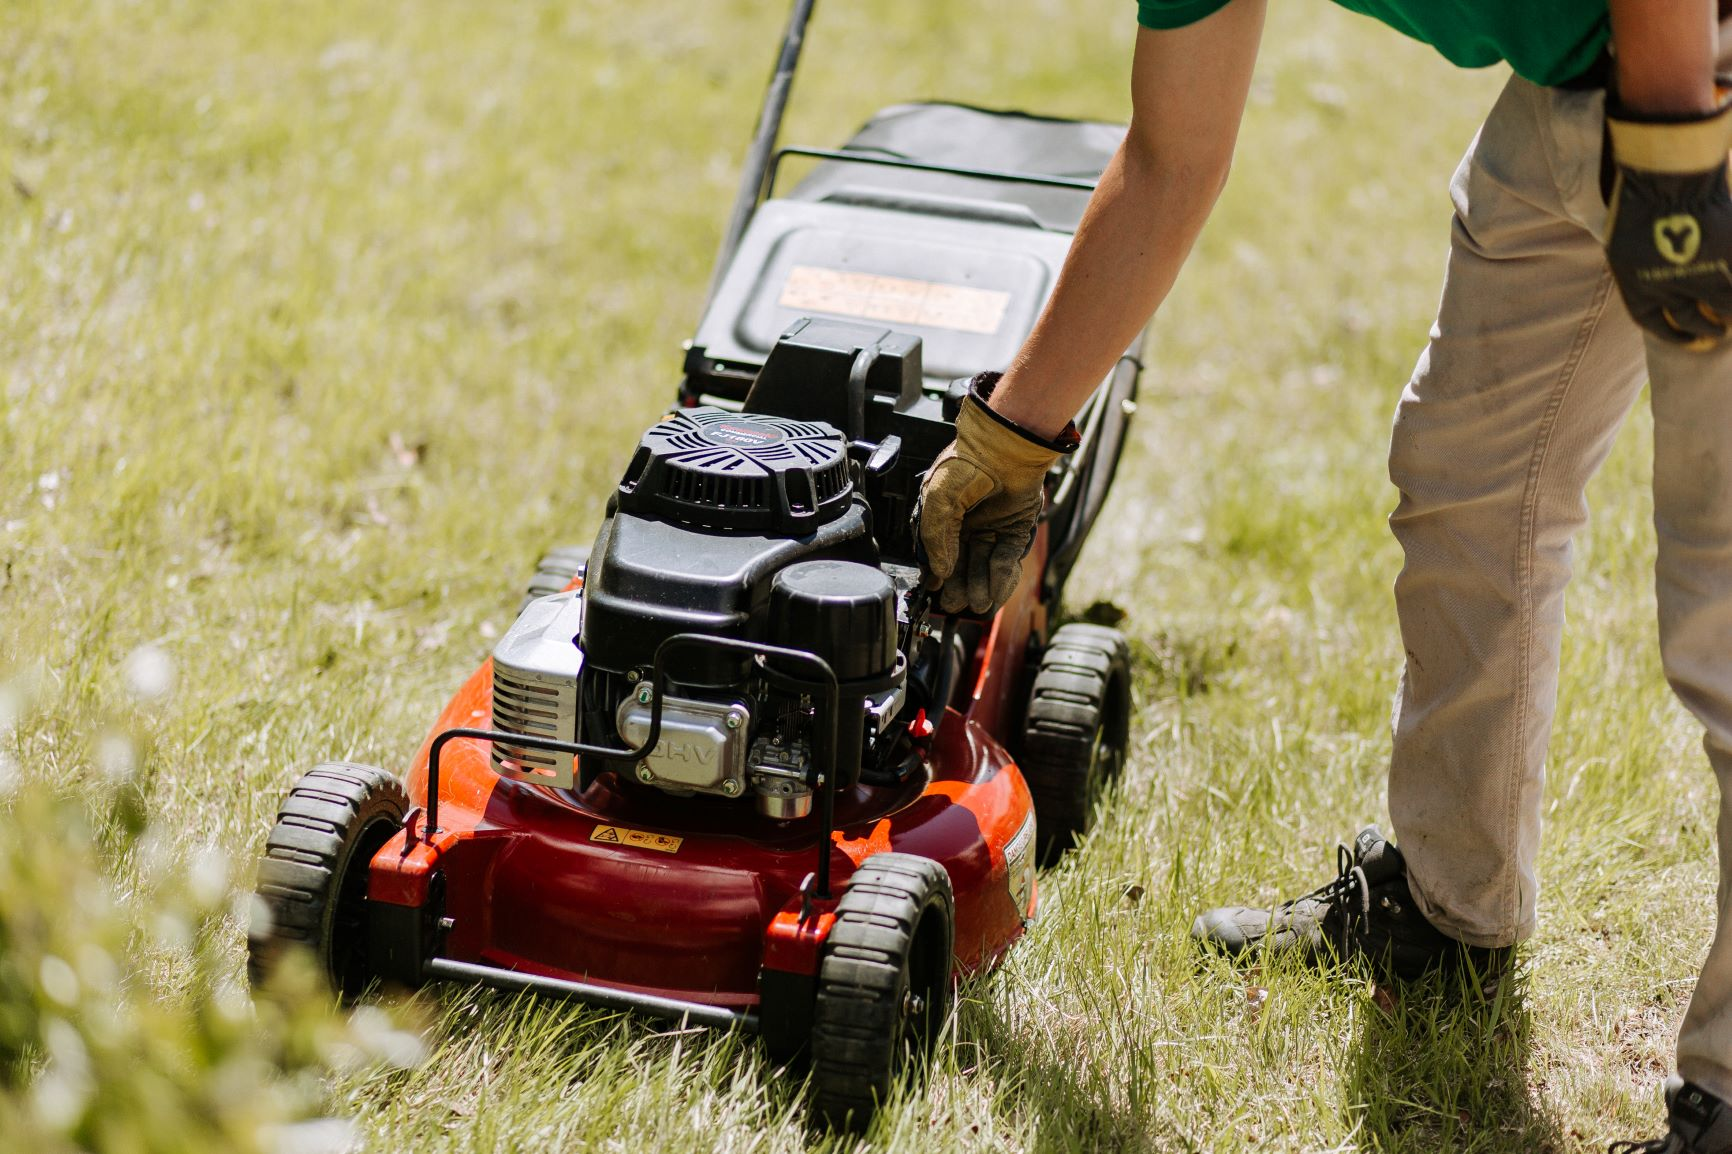 Blog: The One Costly Mistake You're Likely To Do When Storing Your Lawn Mower Over Winter